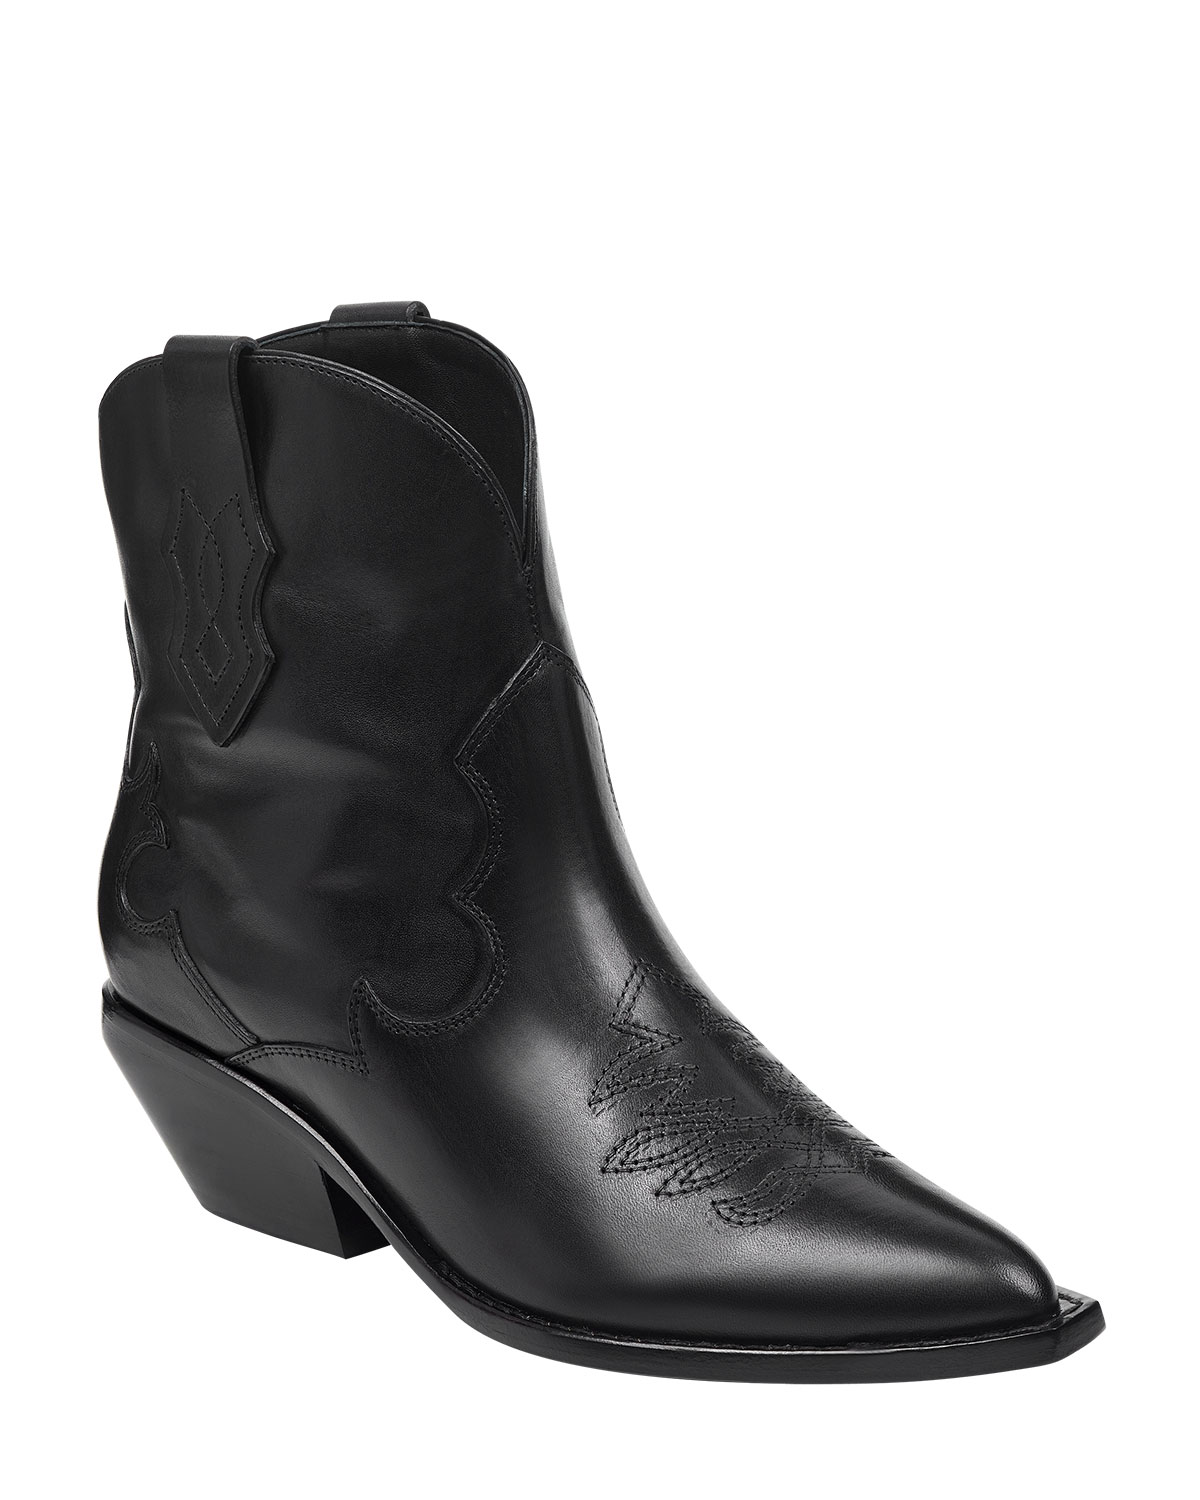 Taima Two-Tone Booties